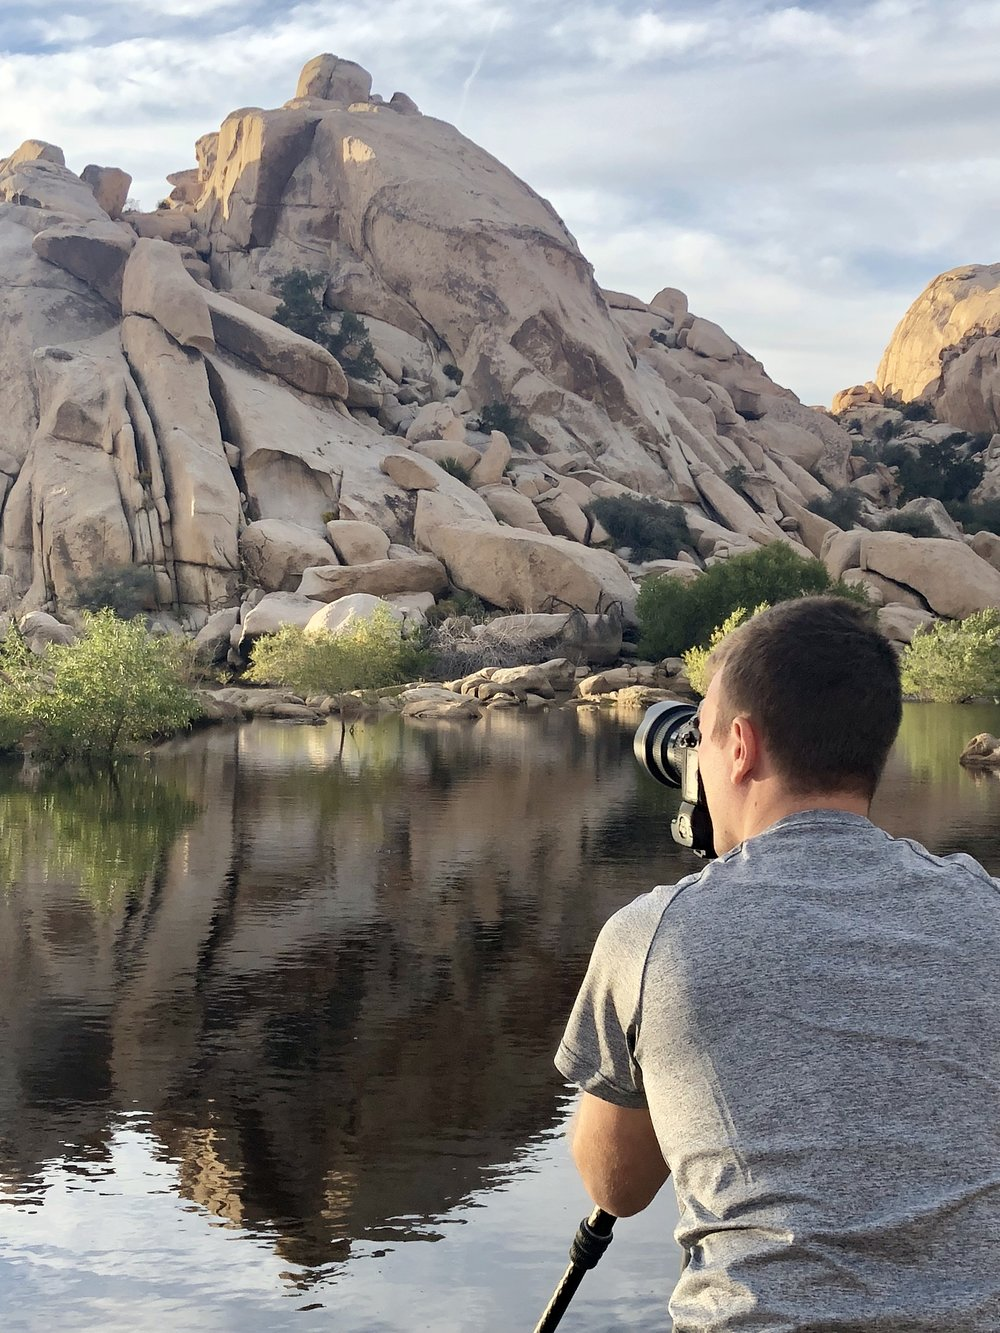 Behind the scenes with my trusty Gitzo Mountaineer tripod photographing Barker Dam.